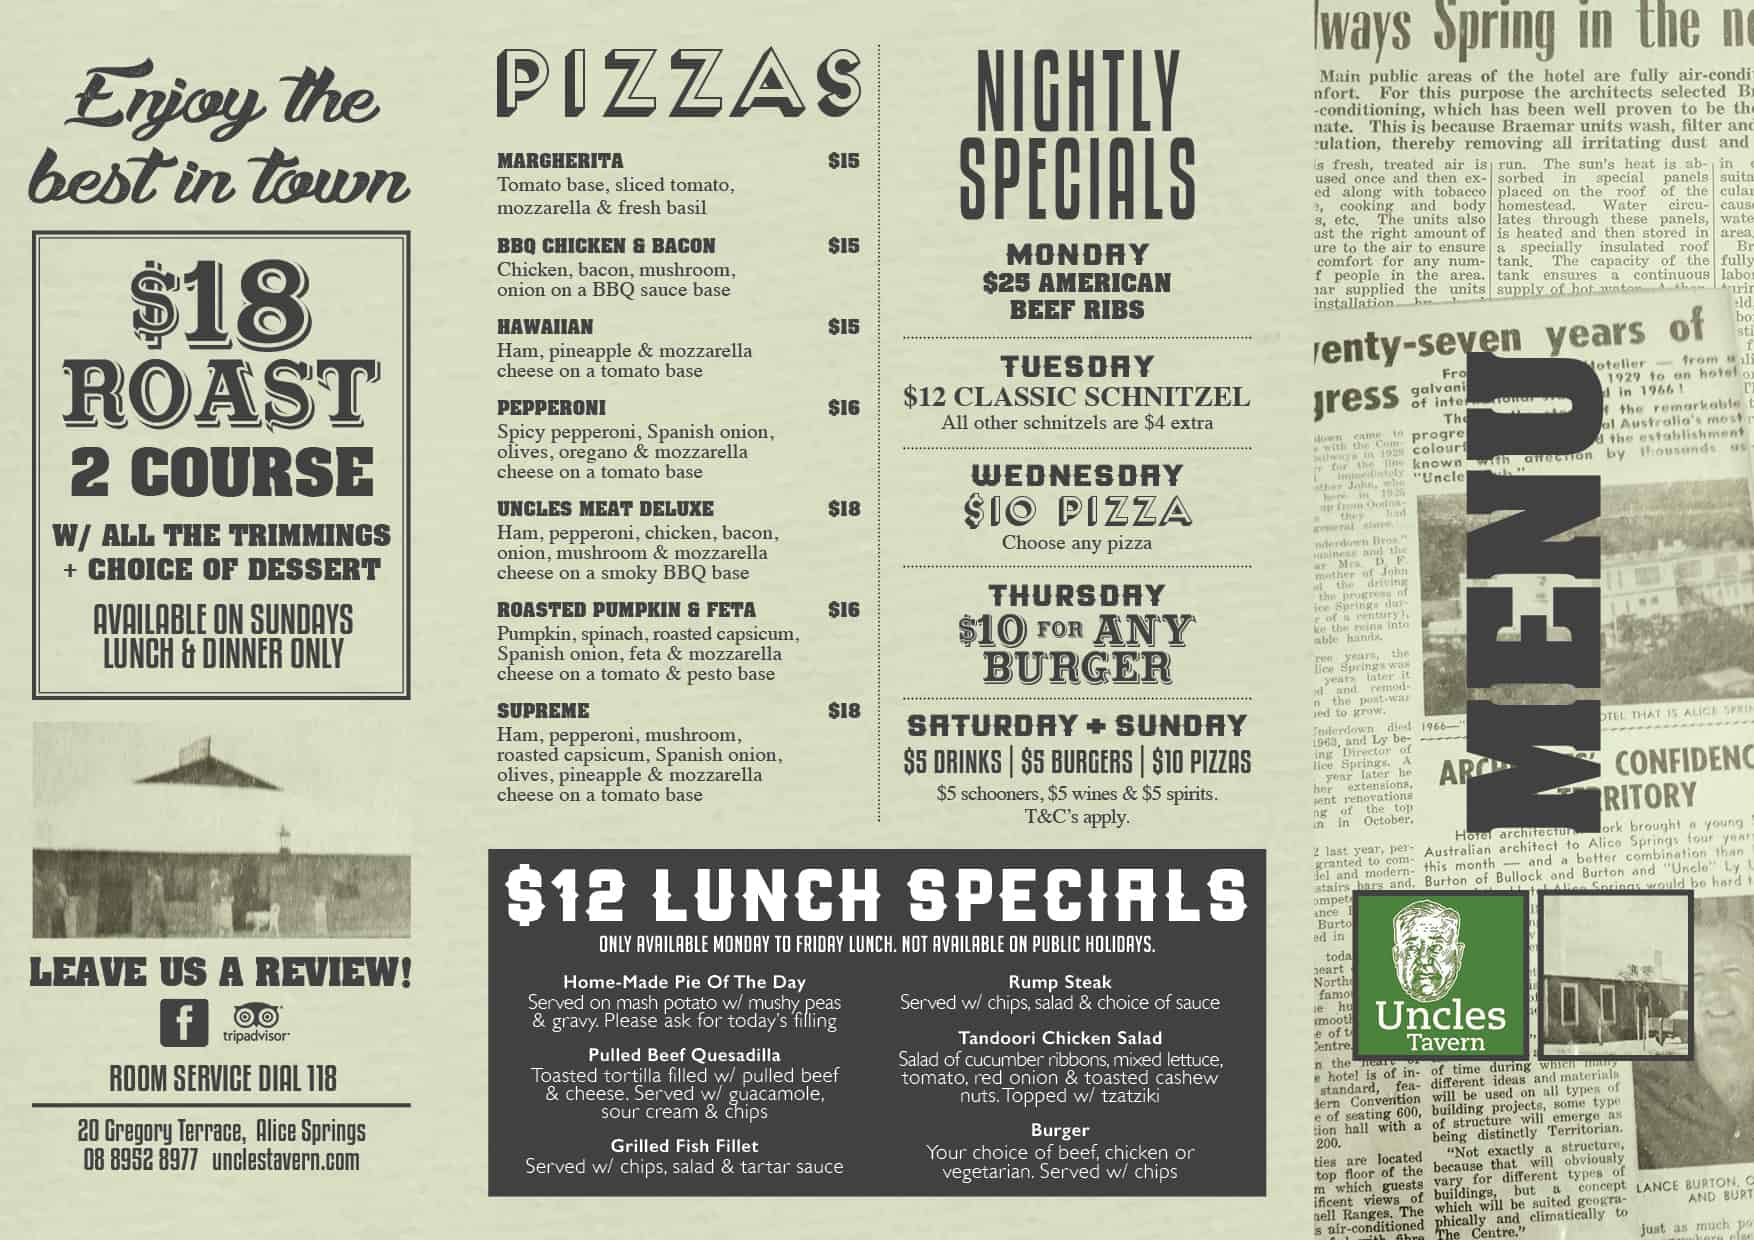 Uncles NOV Menu Green A42 - Uncles Tavern